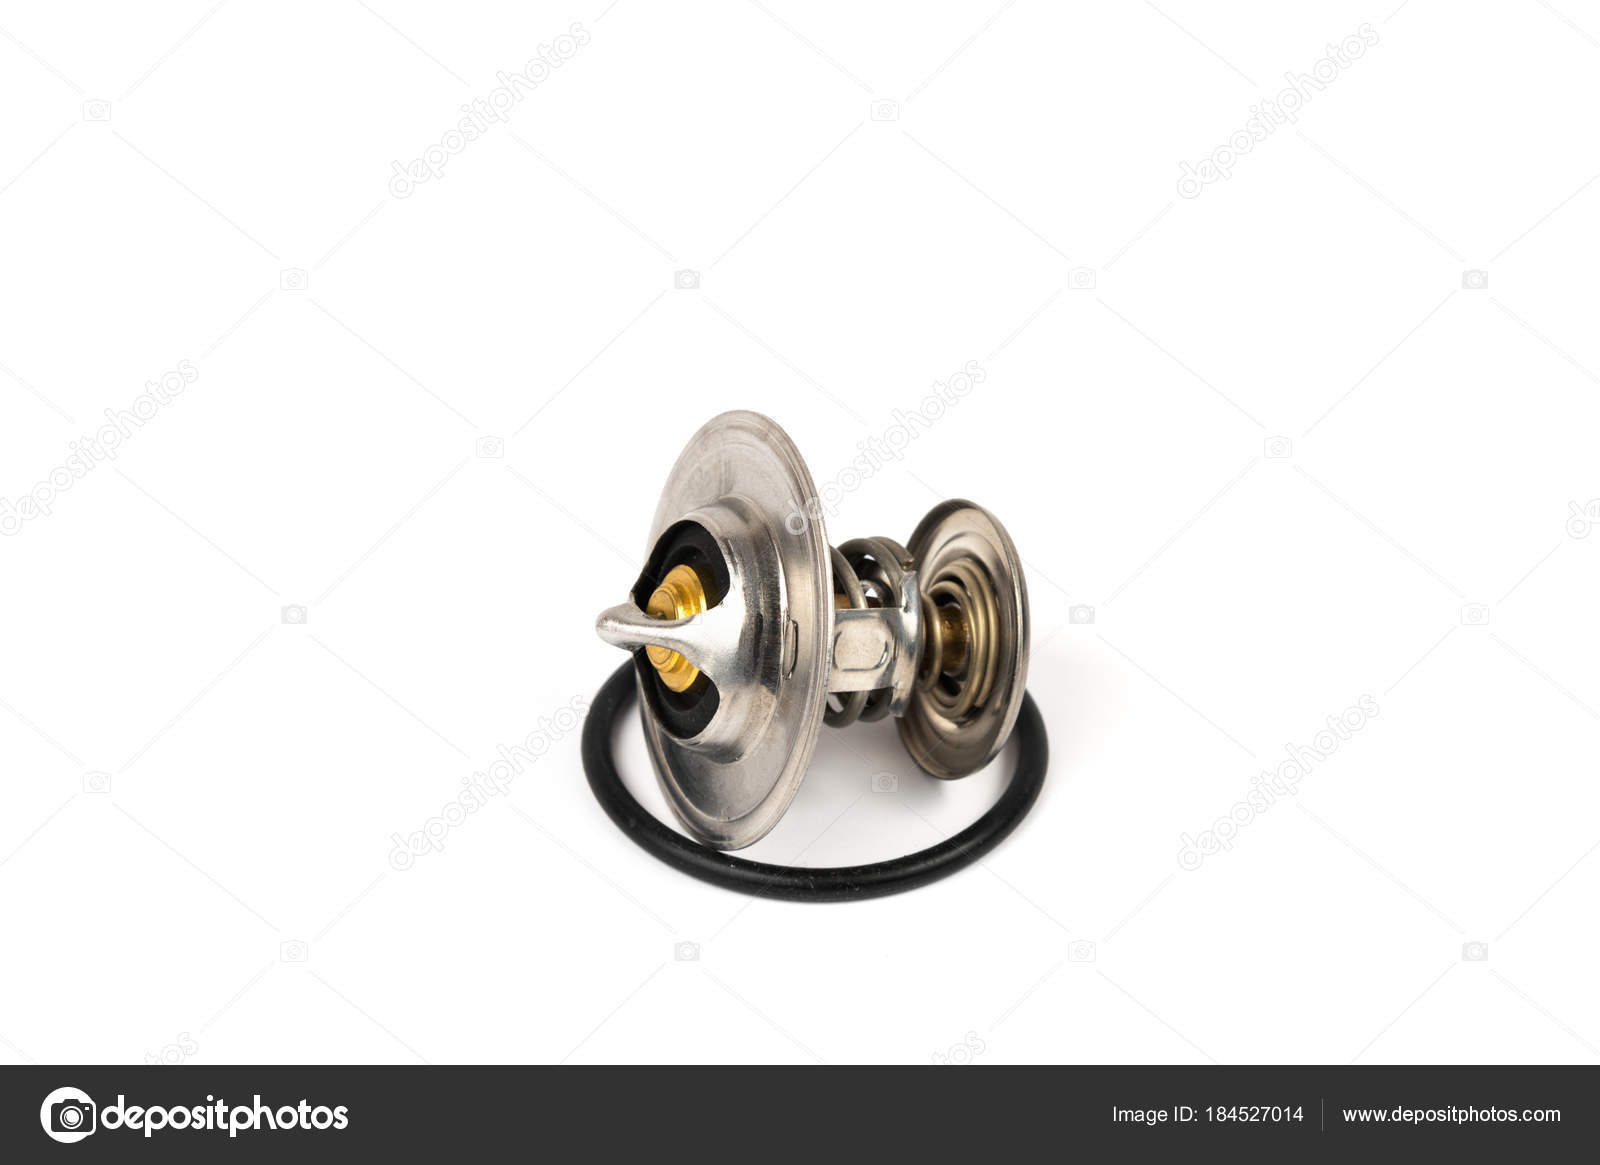 New car thermostat on a white isolated background next to a rubber ...